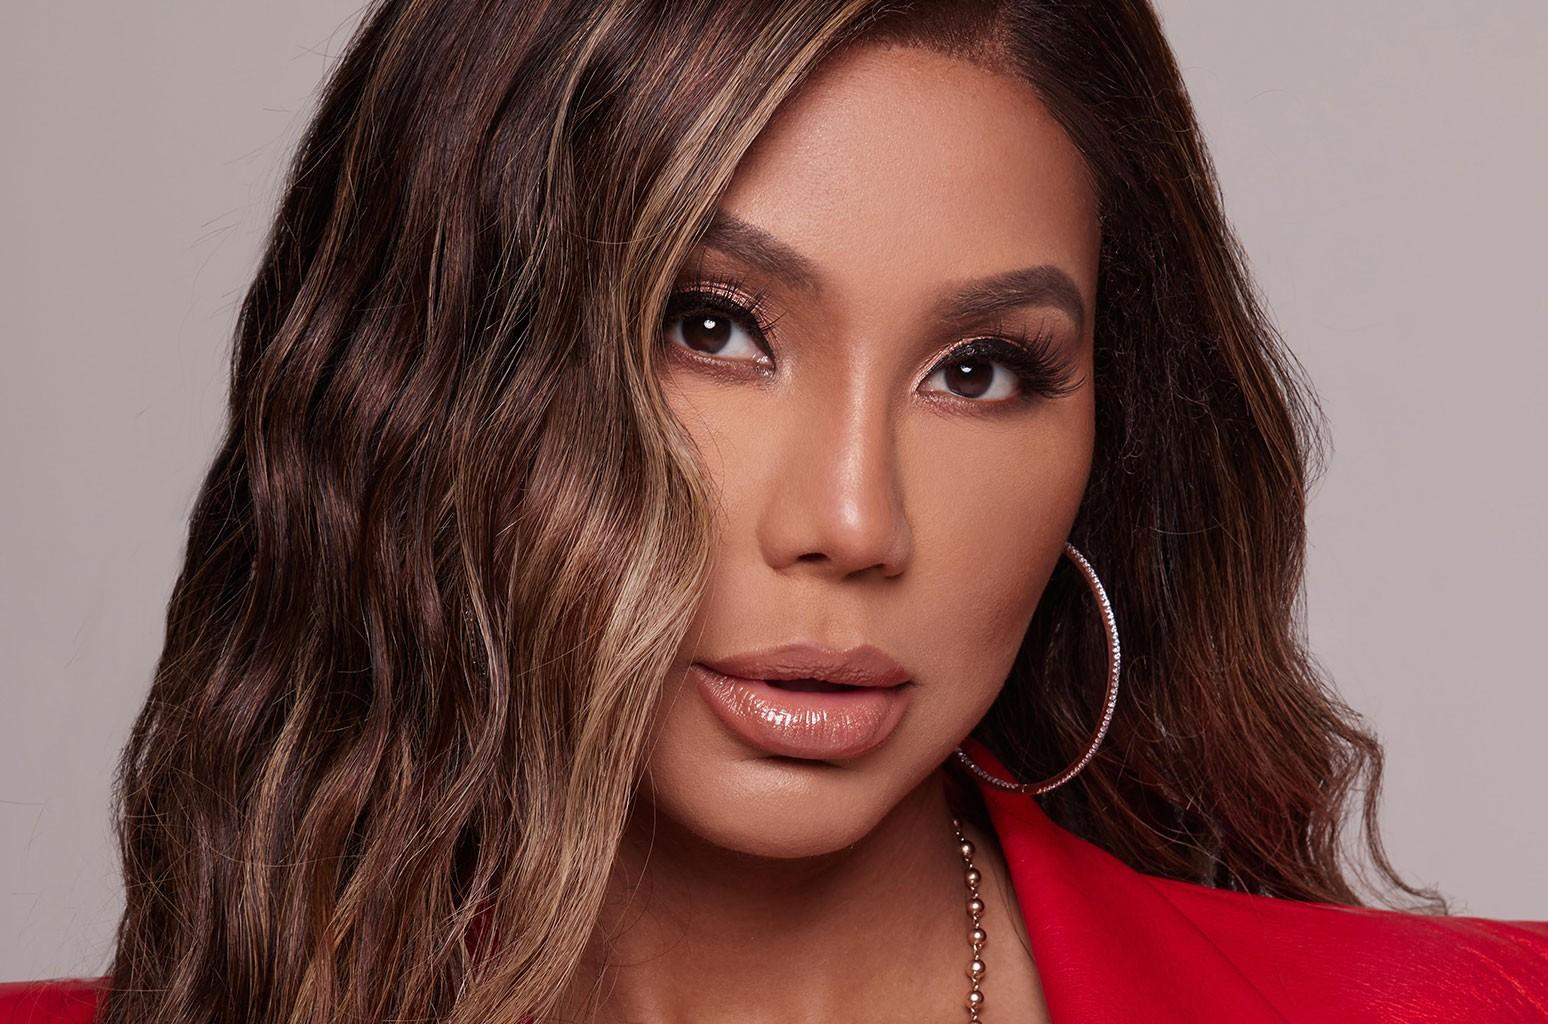 Tamar Braxton Opens Up About How Therapy Has Helped Her After Suicide Attempt - Says She's 'A Different Person!'